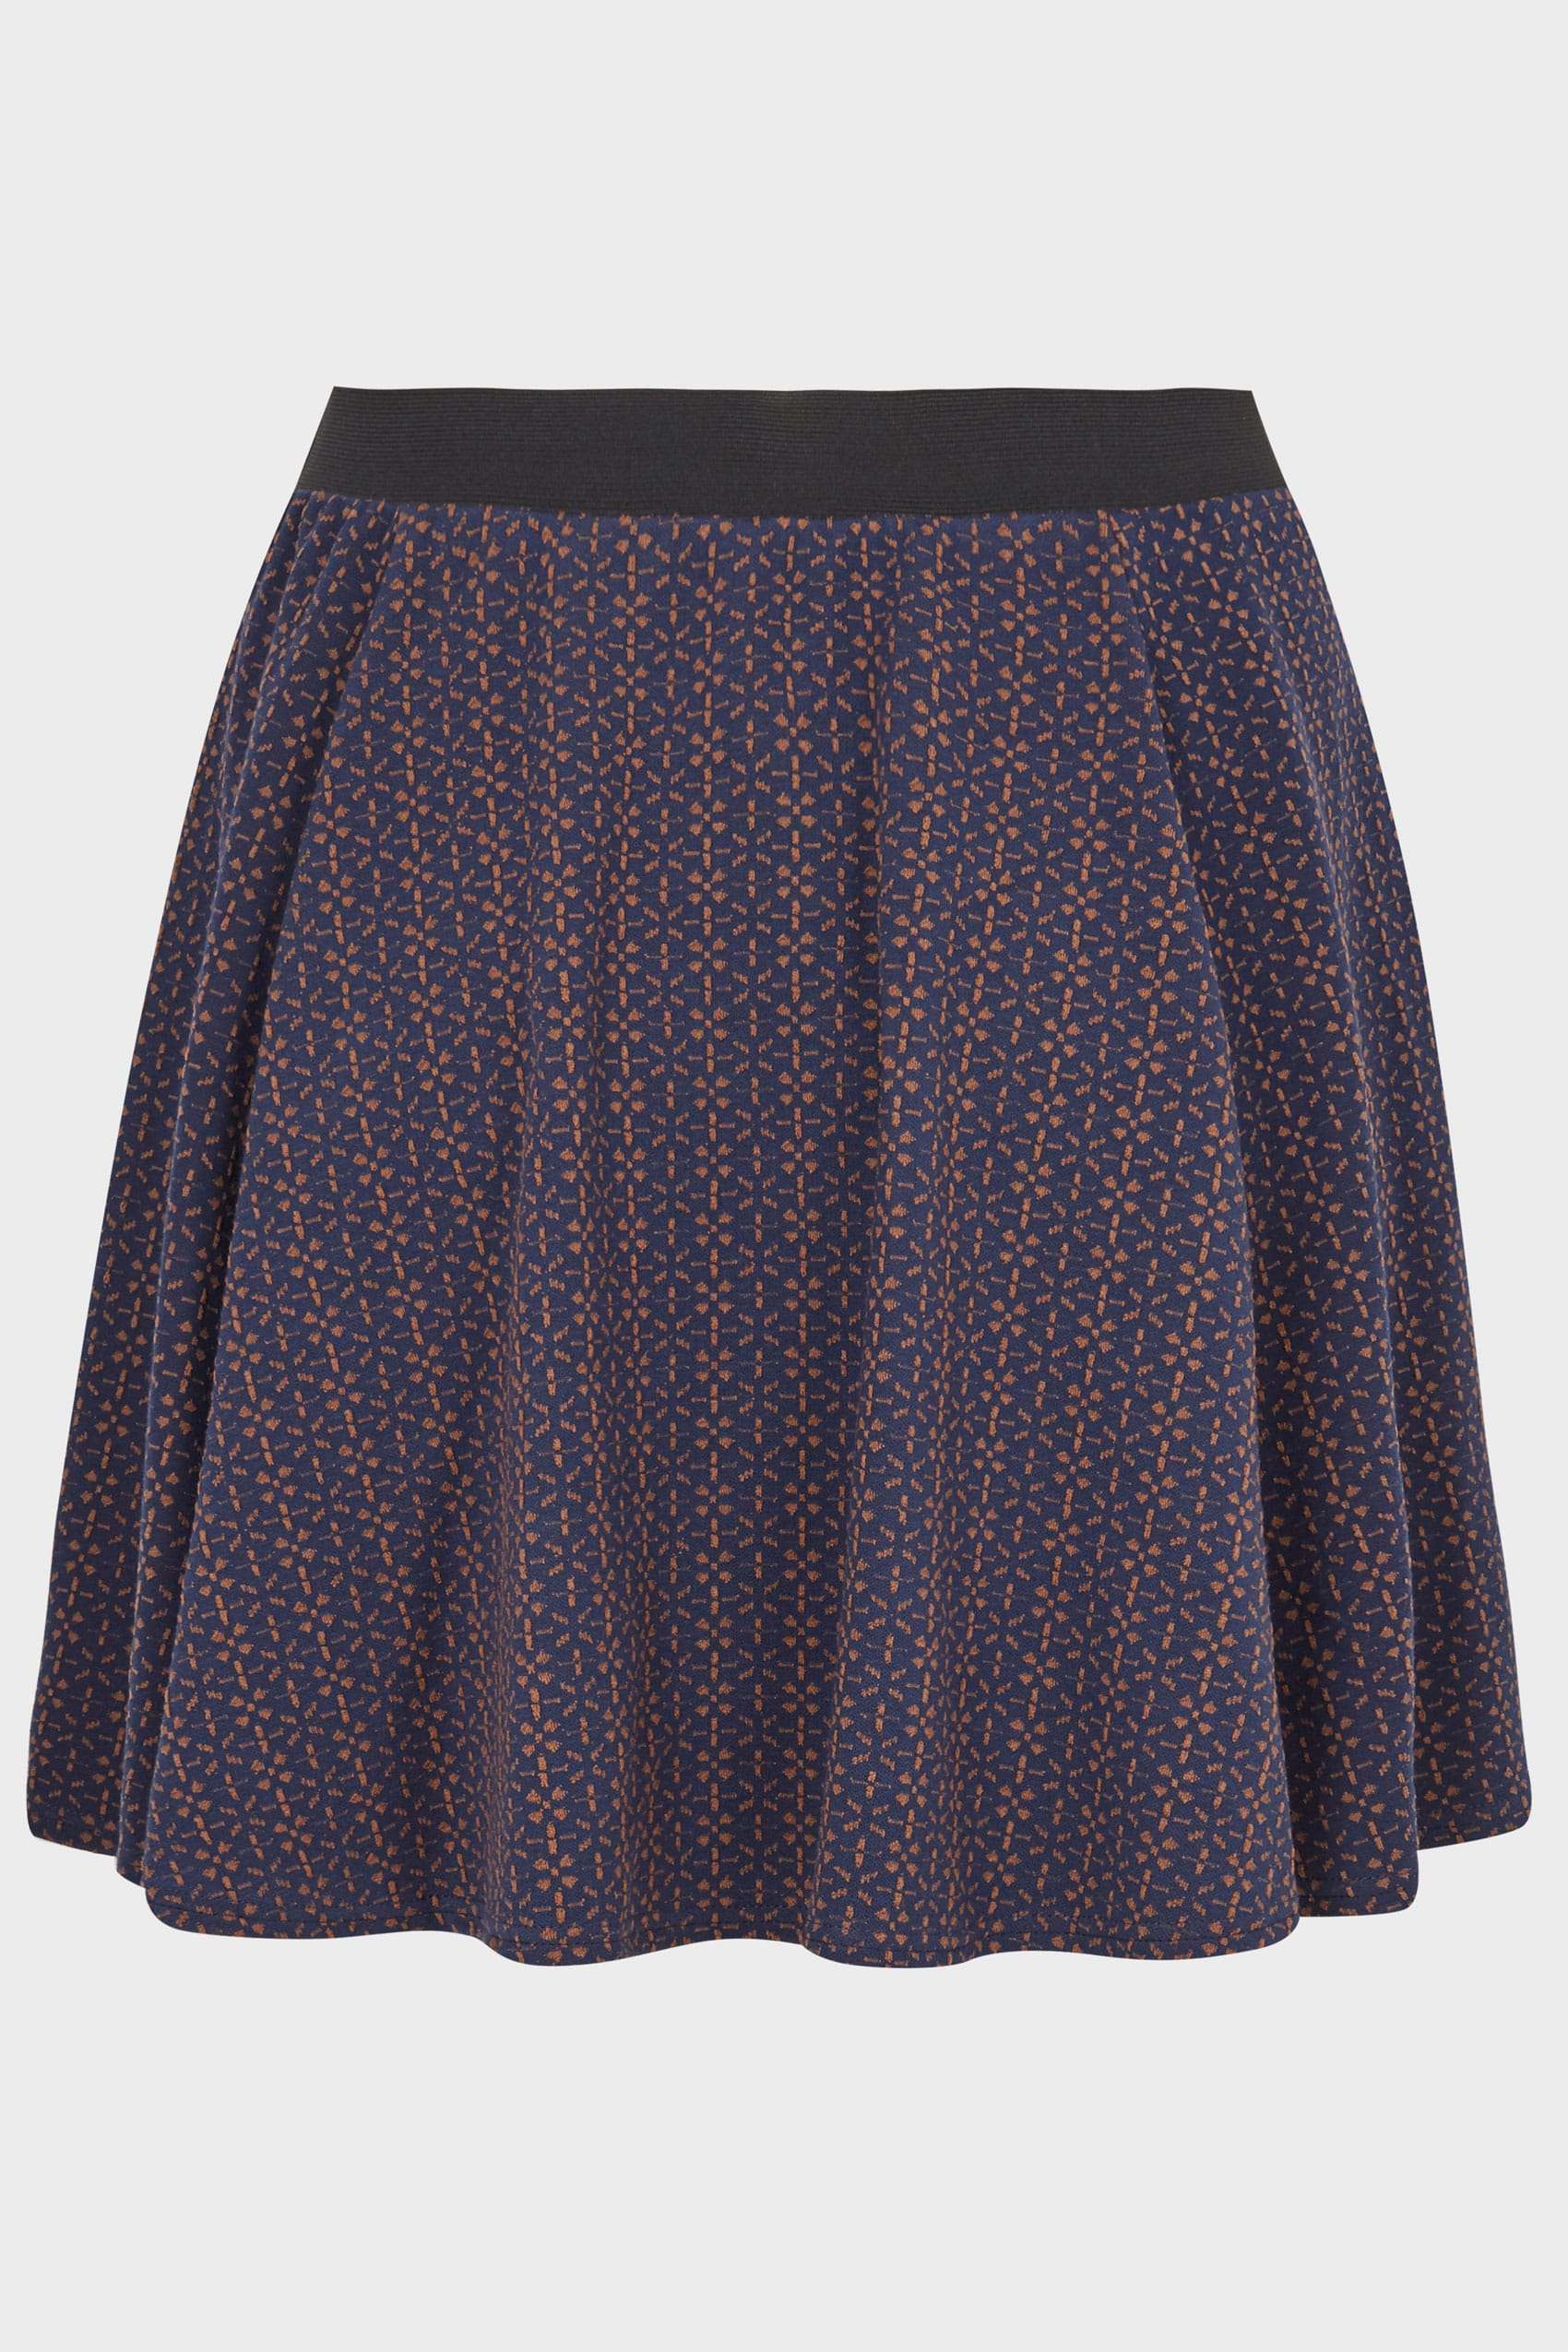 Navy Textured Skater Skirt With Elasticated Waistband Plus Size 16 Tendencies Hats Classic Fist Bump